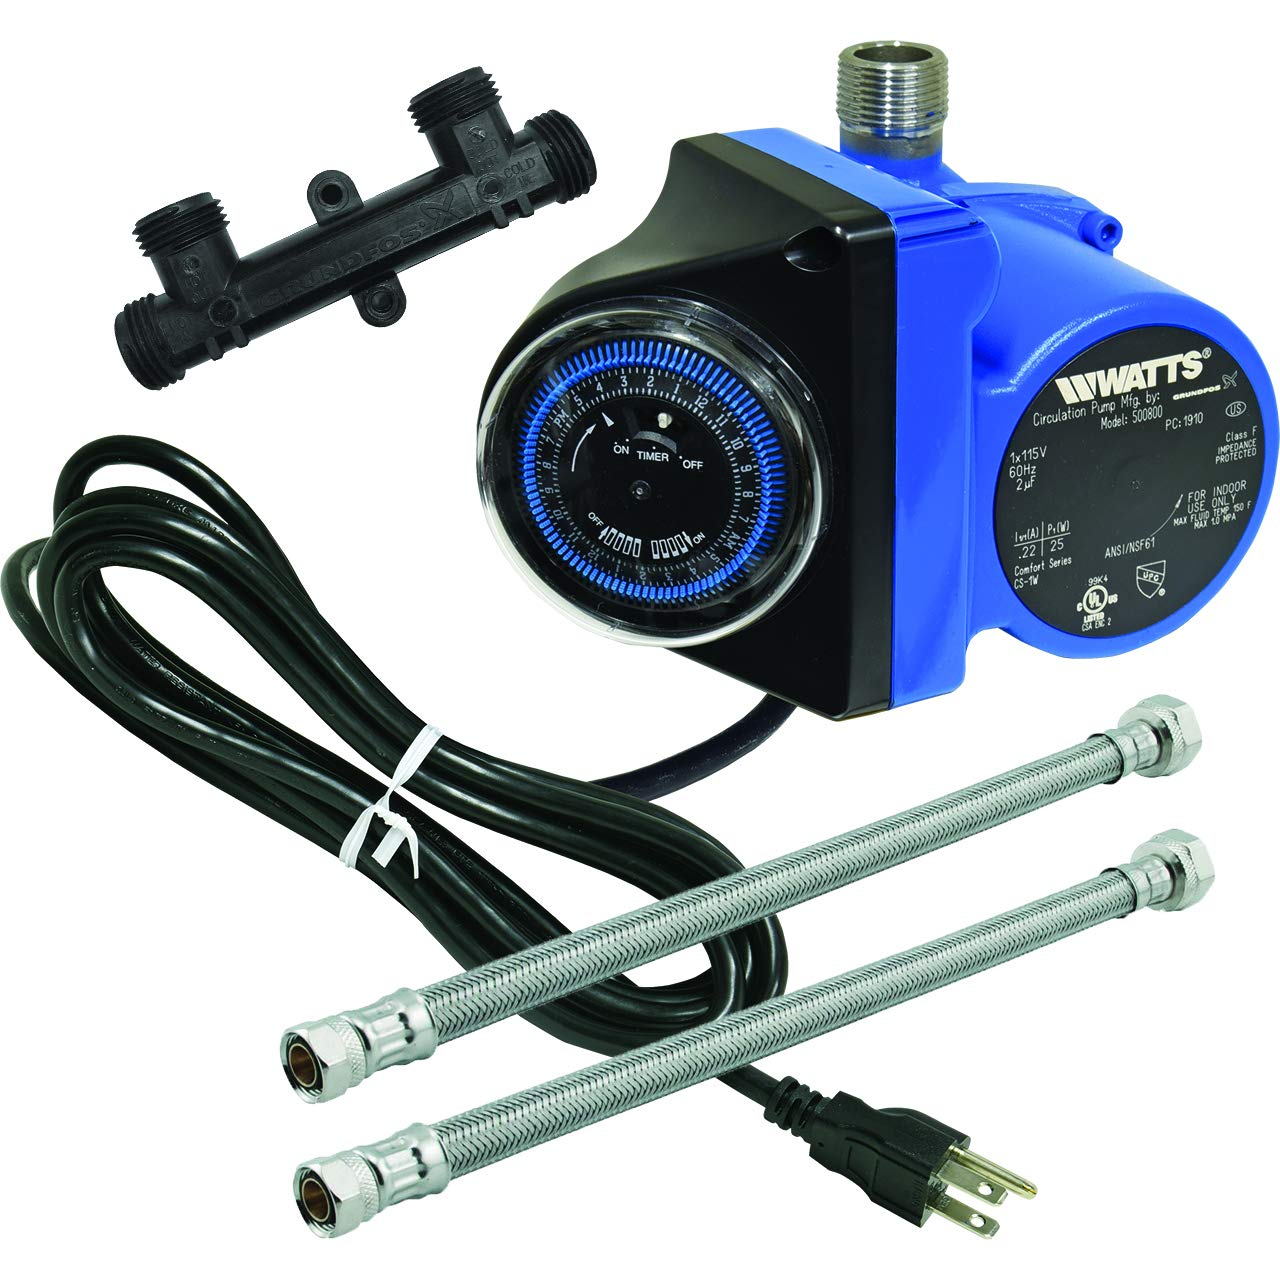 Watts 500800 Instant Hot Water Recirculating System with Built-In Timer, Easy to Install by Watts